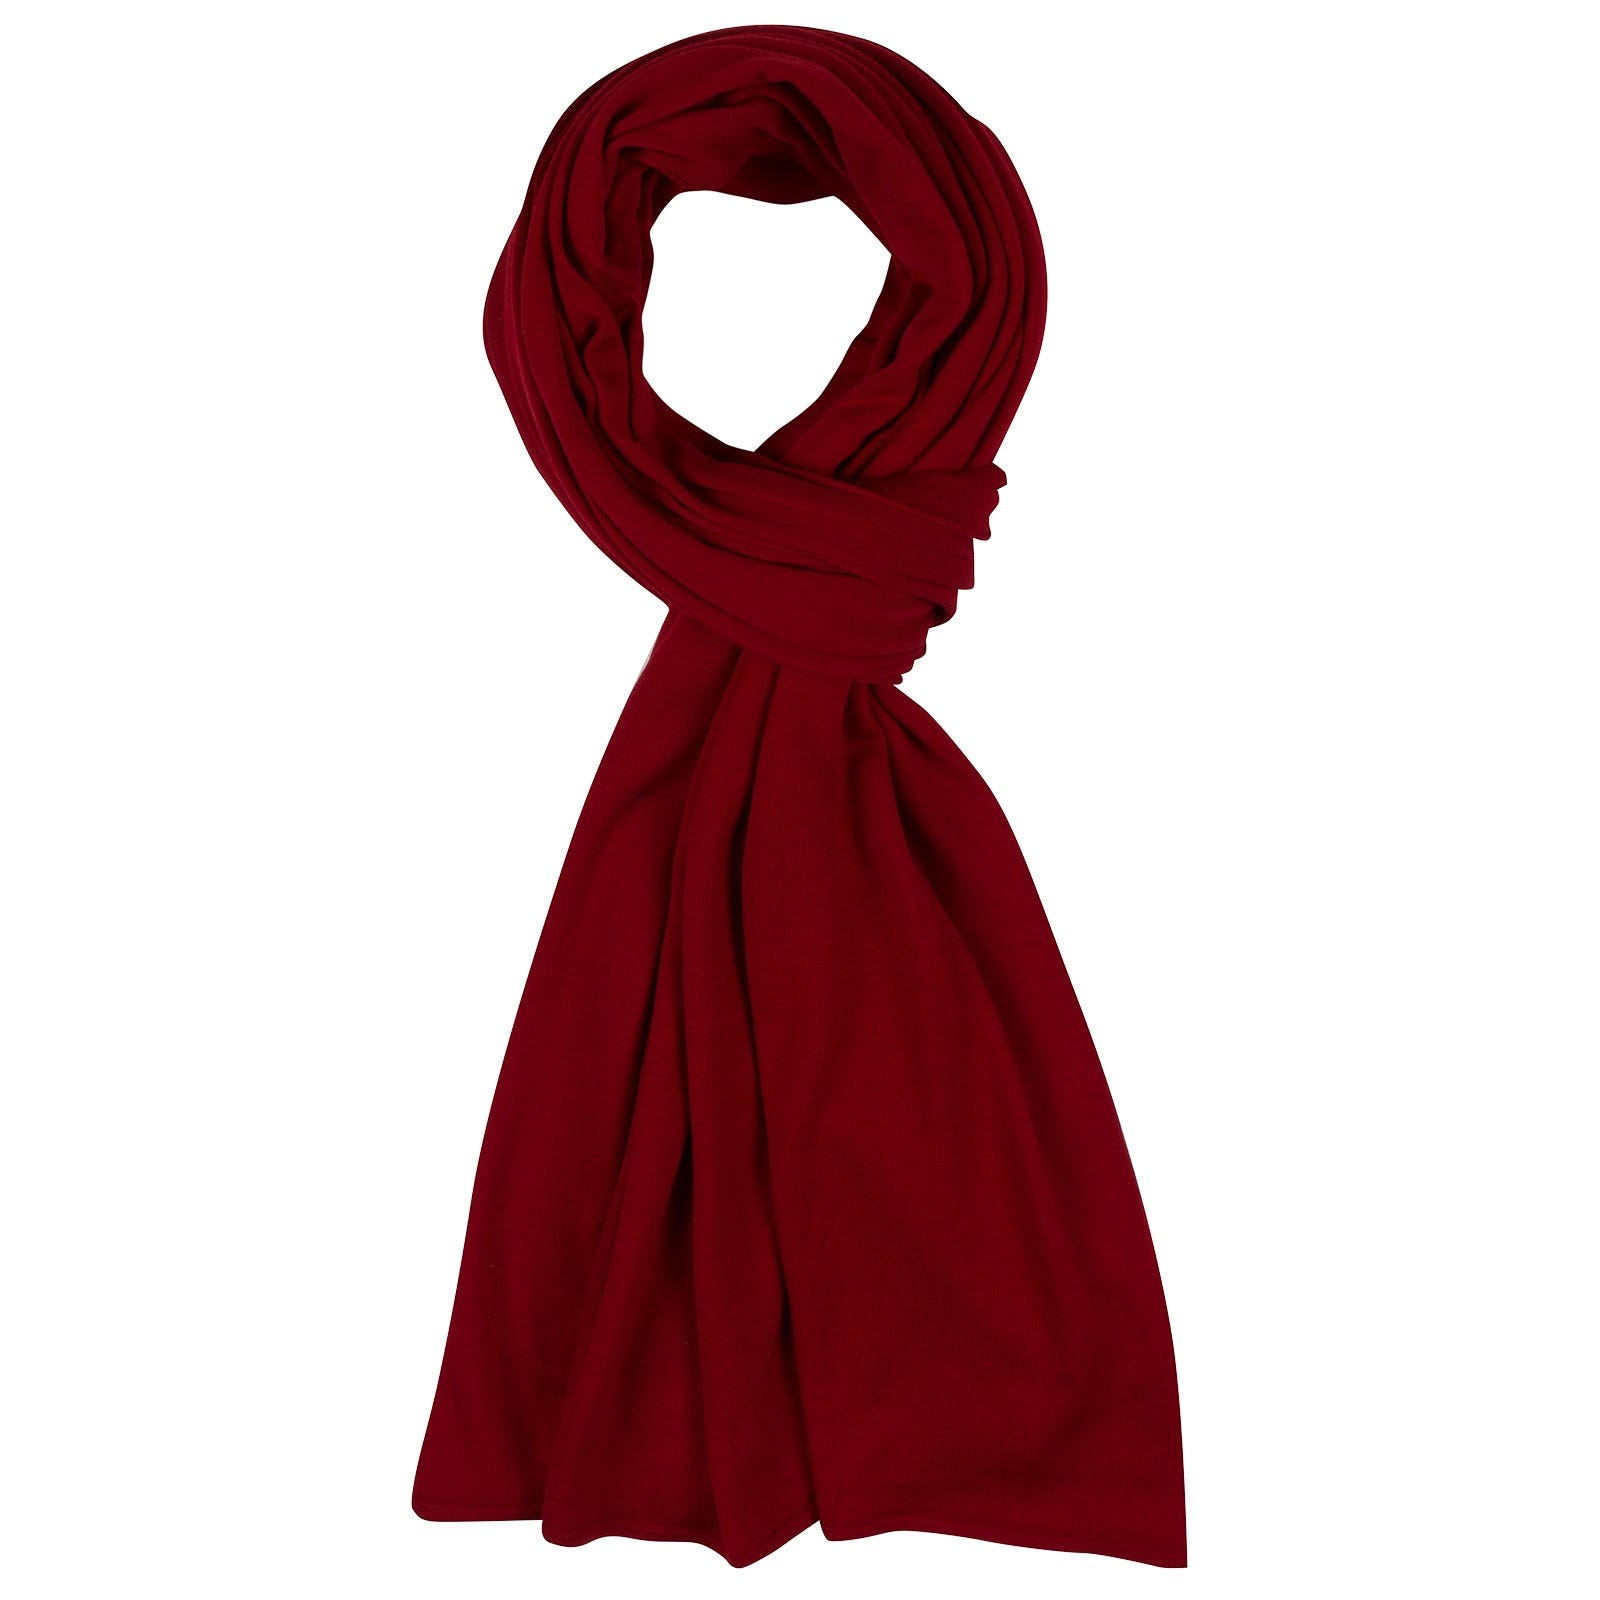 John Smedley Wings Merino Wool Shawl in Thermal Red-ONE